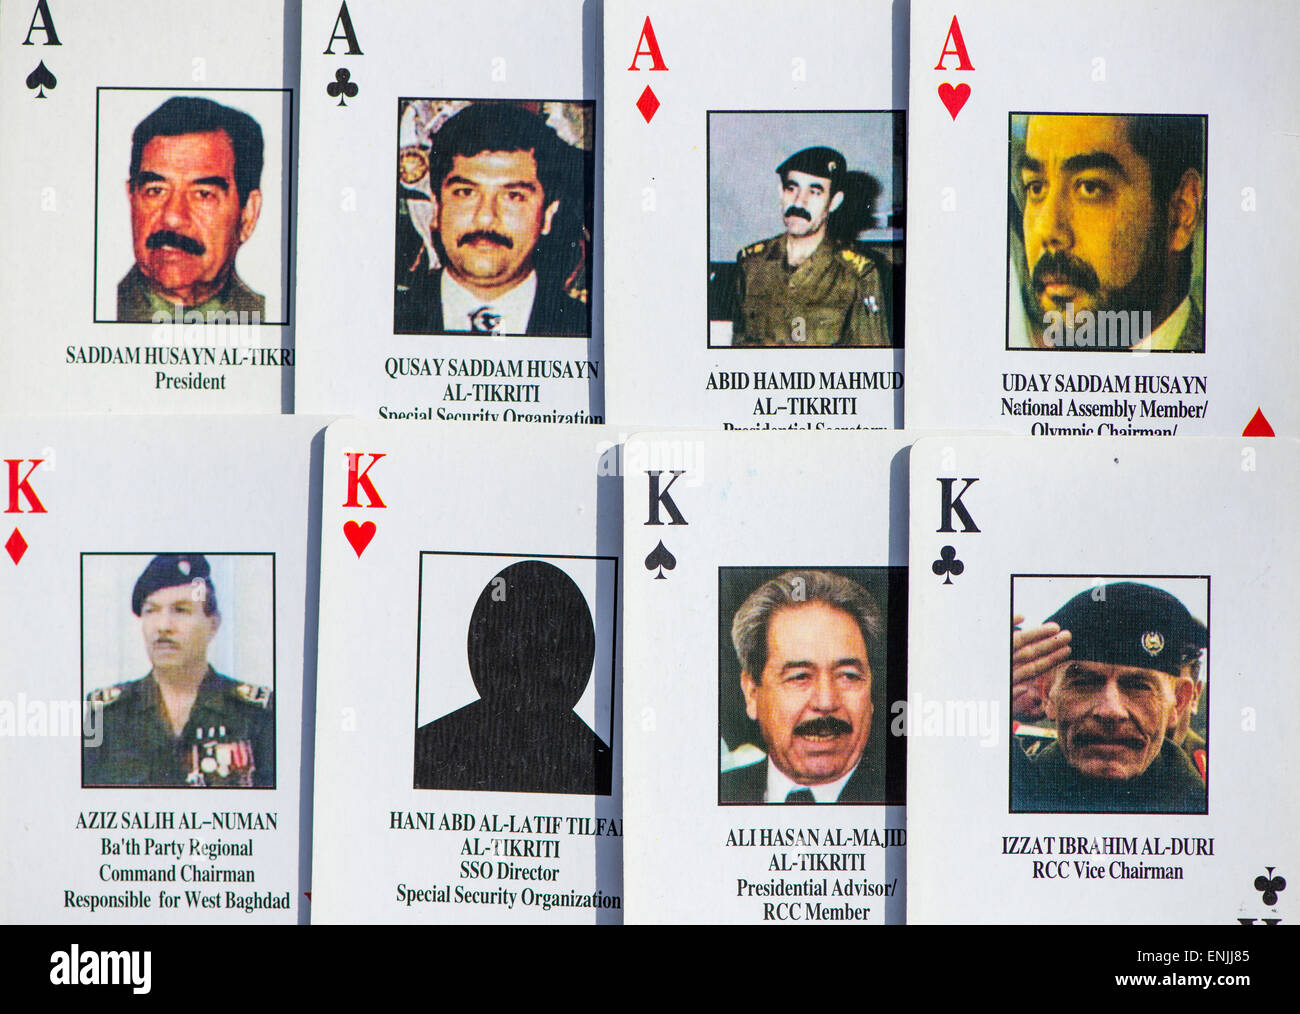 playing cards to identify members of the baath party in irak during the war with usa in 2003 - Stock Image